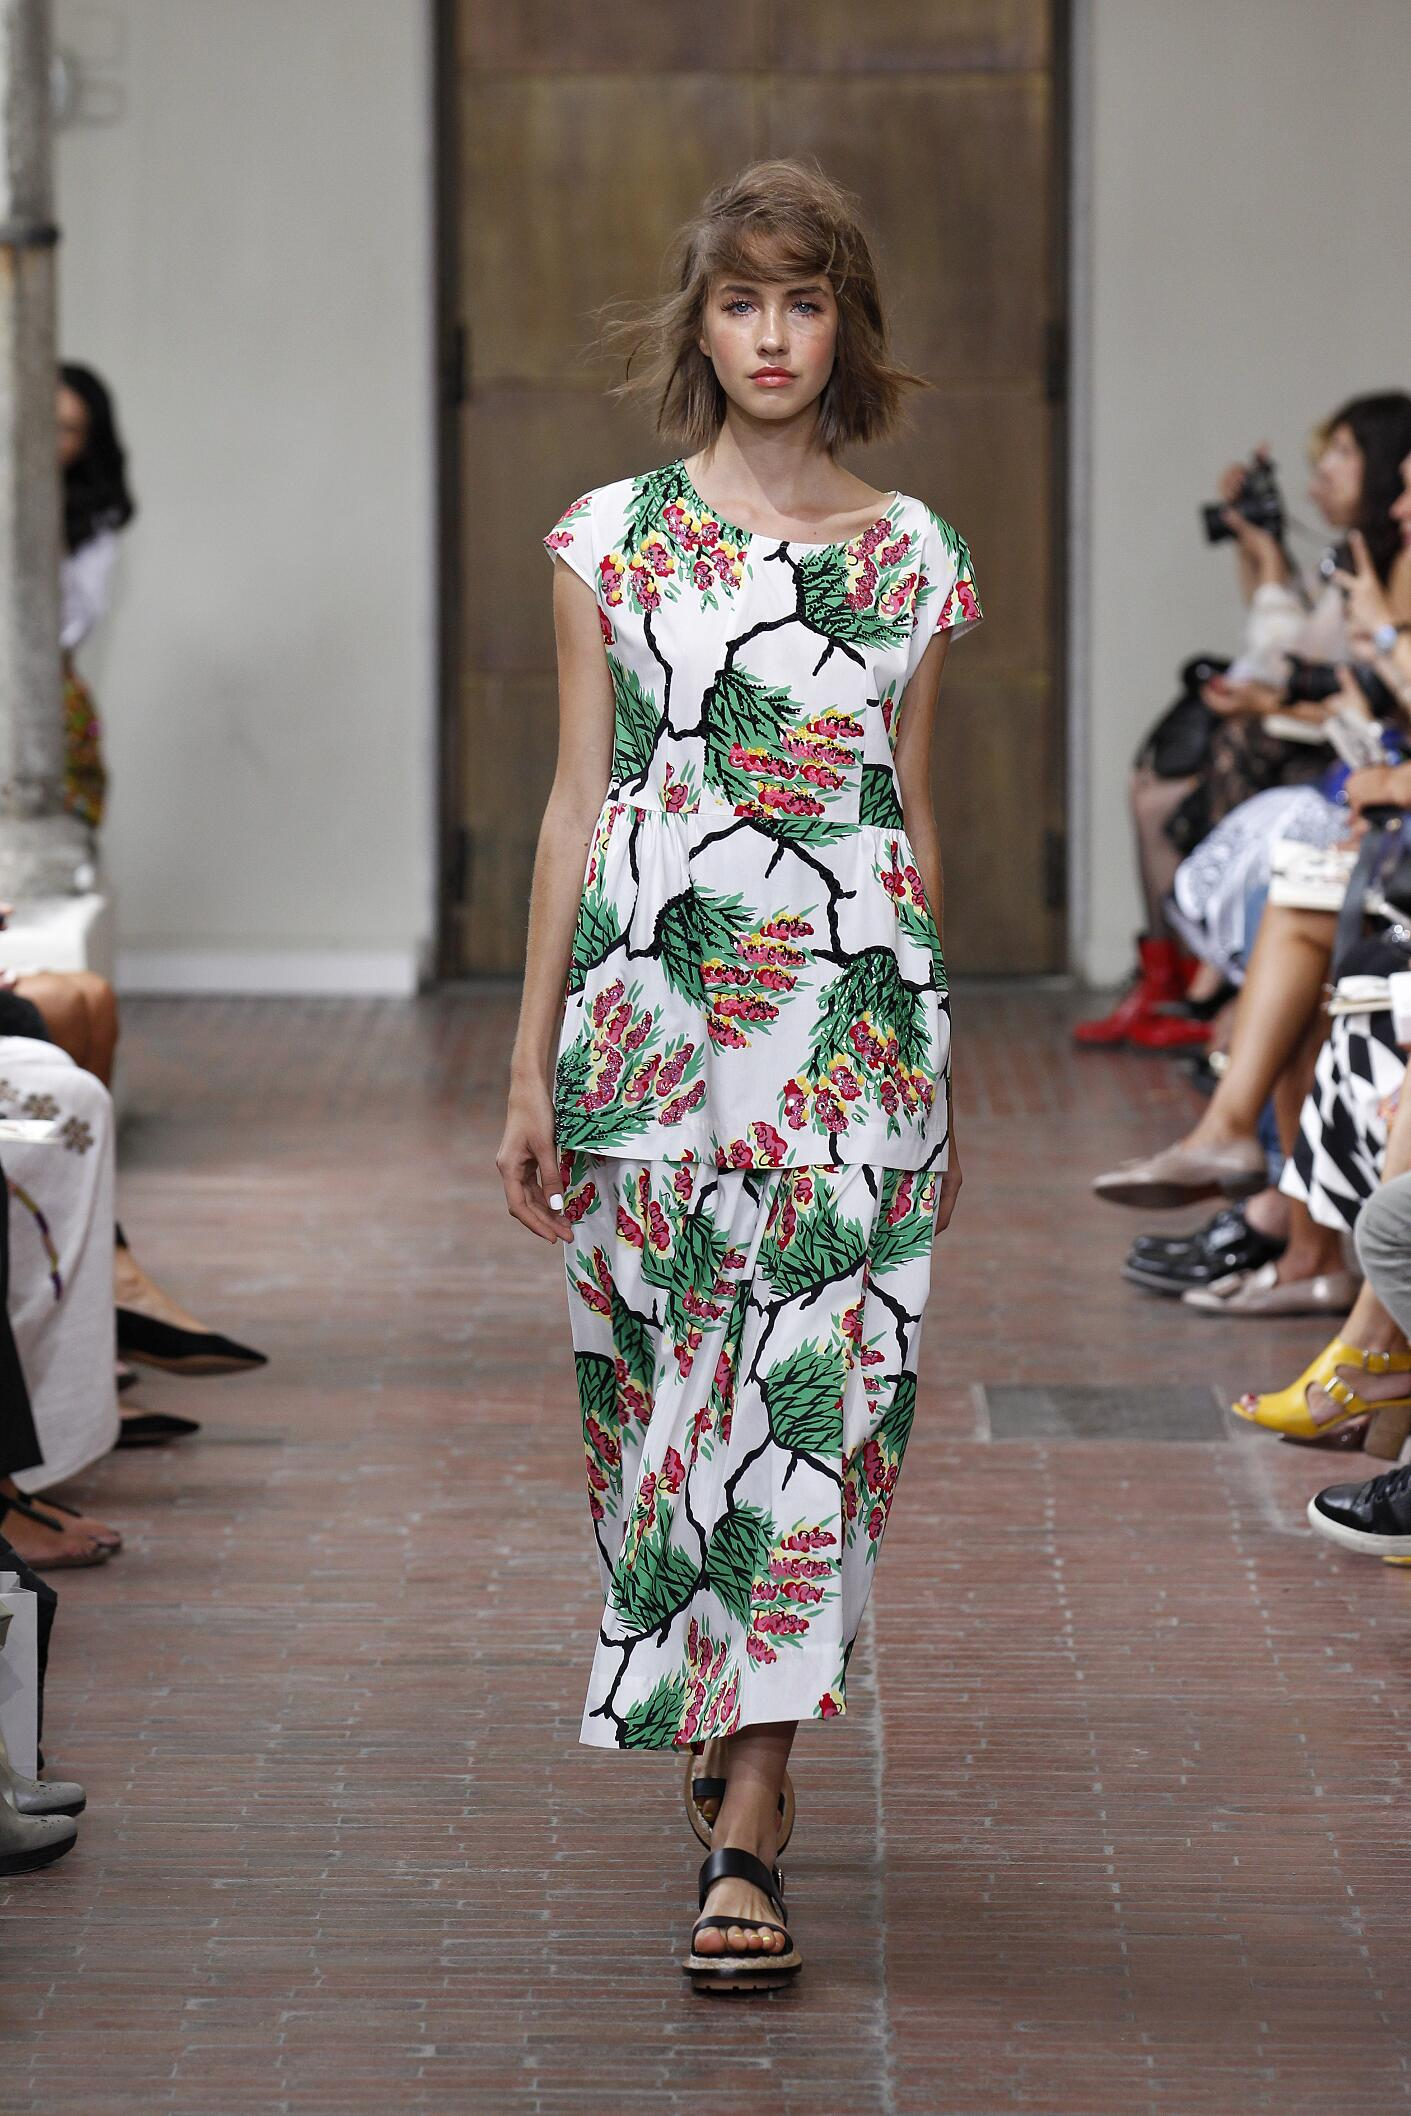 2015 Catwalk I'm Isola Marras Summer